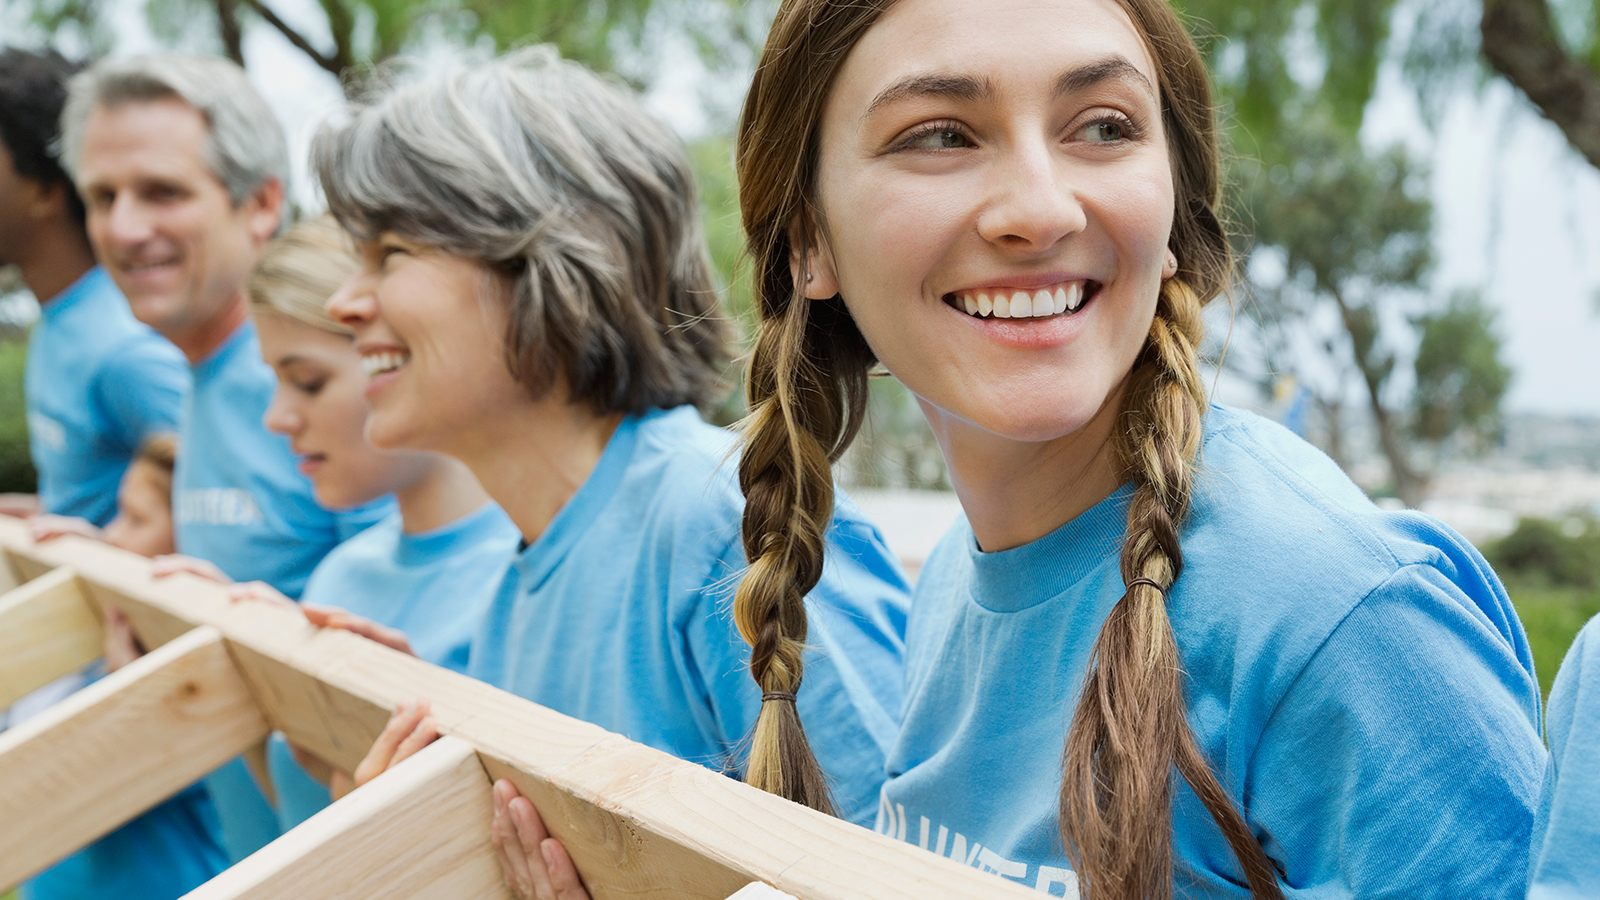 Visa volunteers working at a build site.